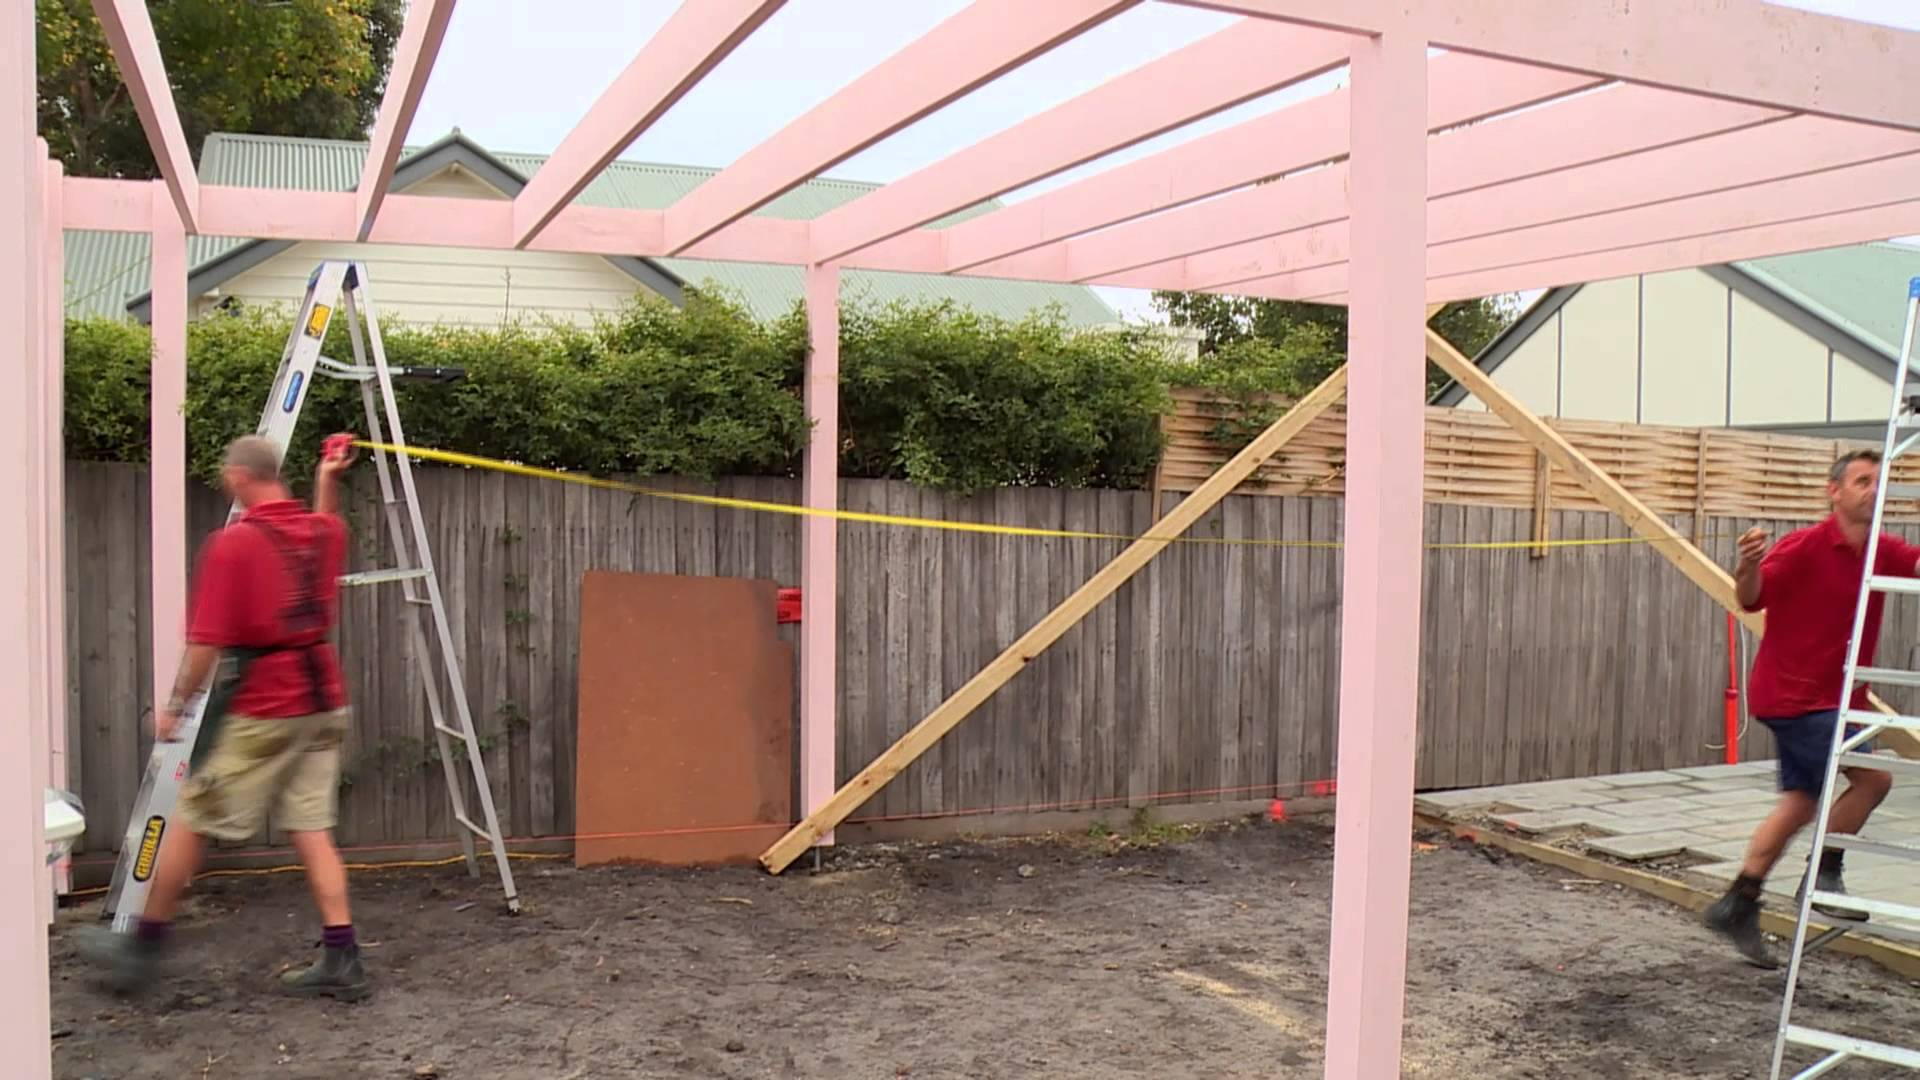 diy carport how to install bracing for a carport - diy at bunnings - KPLNNNG